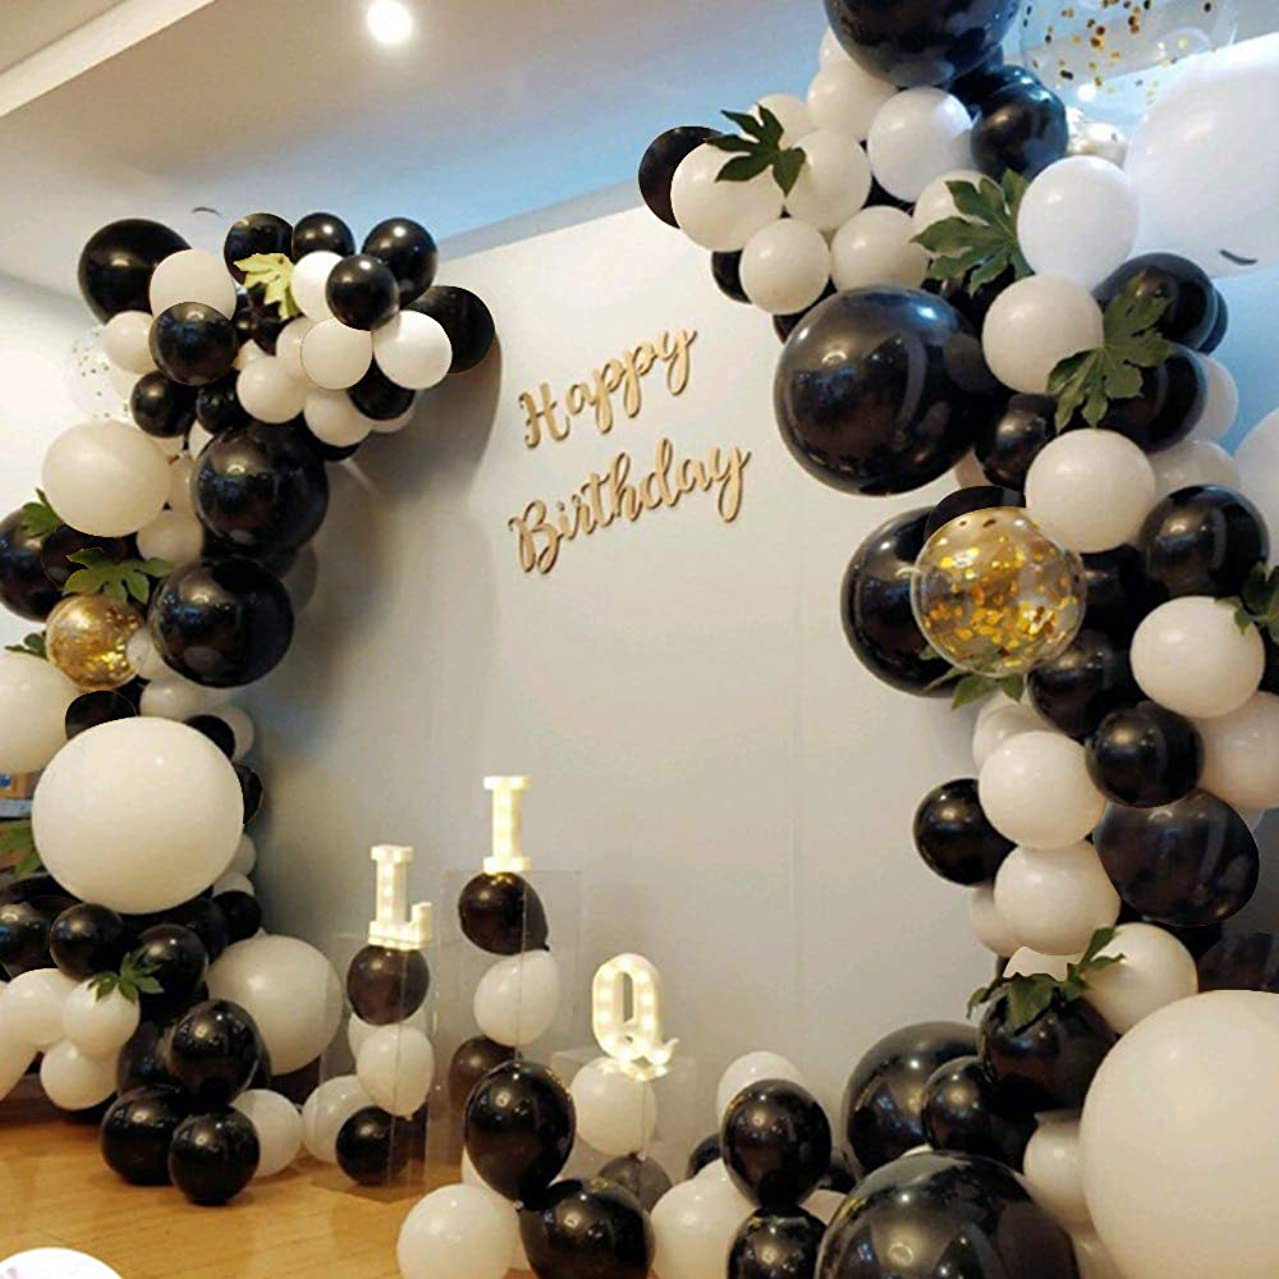 Graduation Party Decoration 130Pcs10In Black and White Balloon Garland Arch Kit,Green Turtle Leaves,Inflator Pump,Birthday, Wedding,Baby Shower,Corporate Events, Bachelor Party,Photo Background